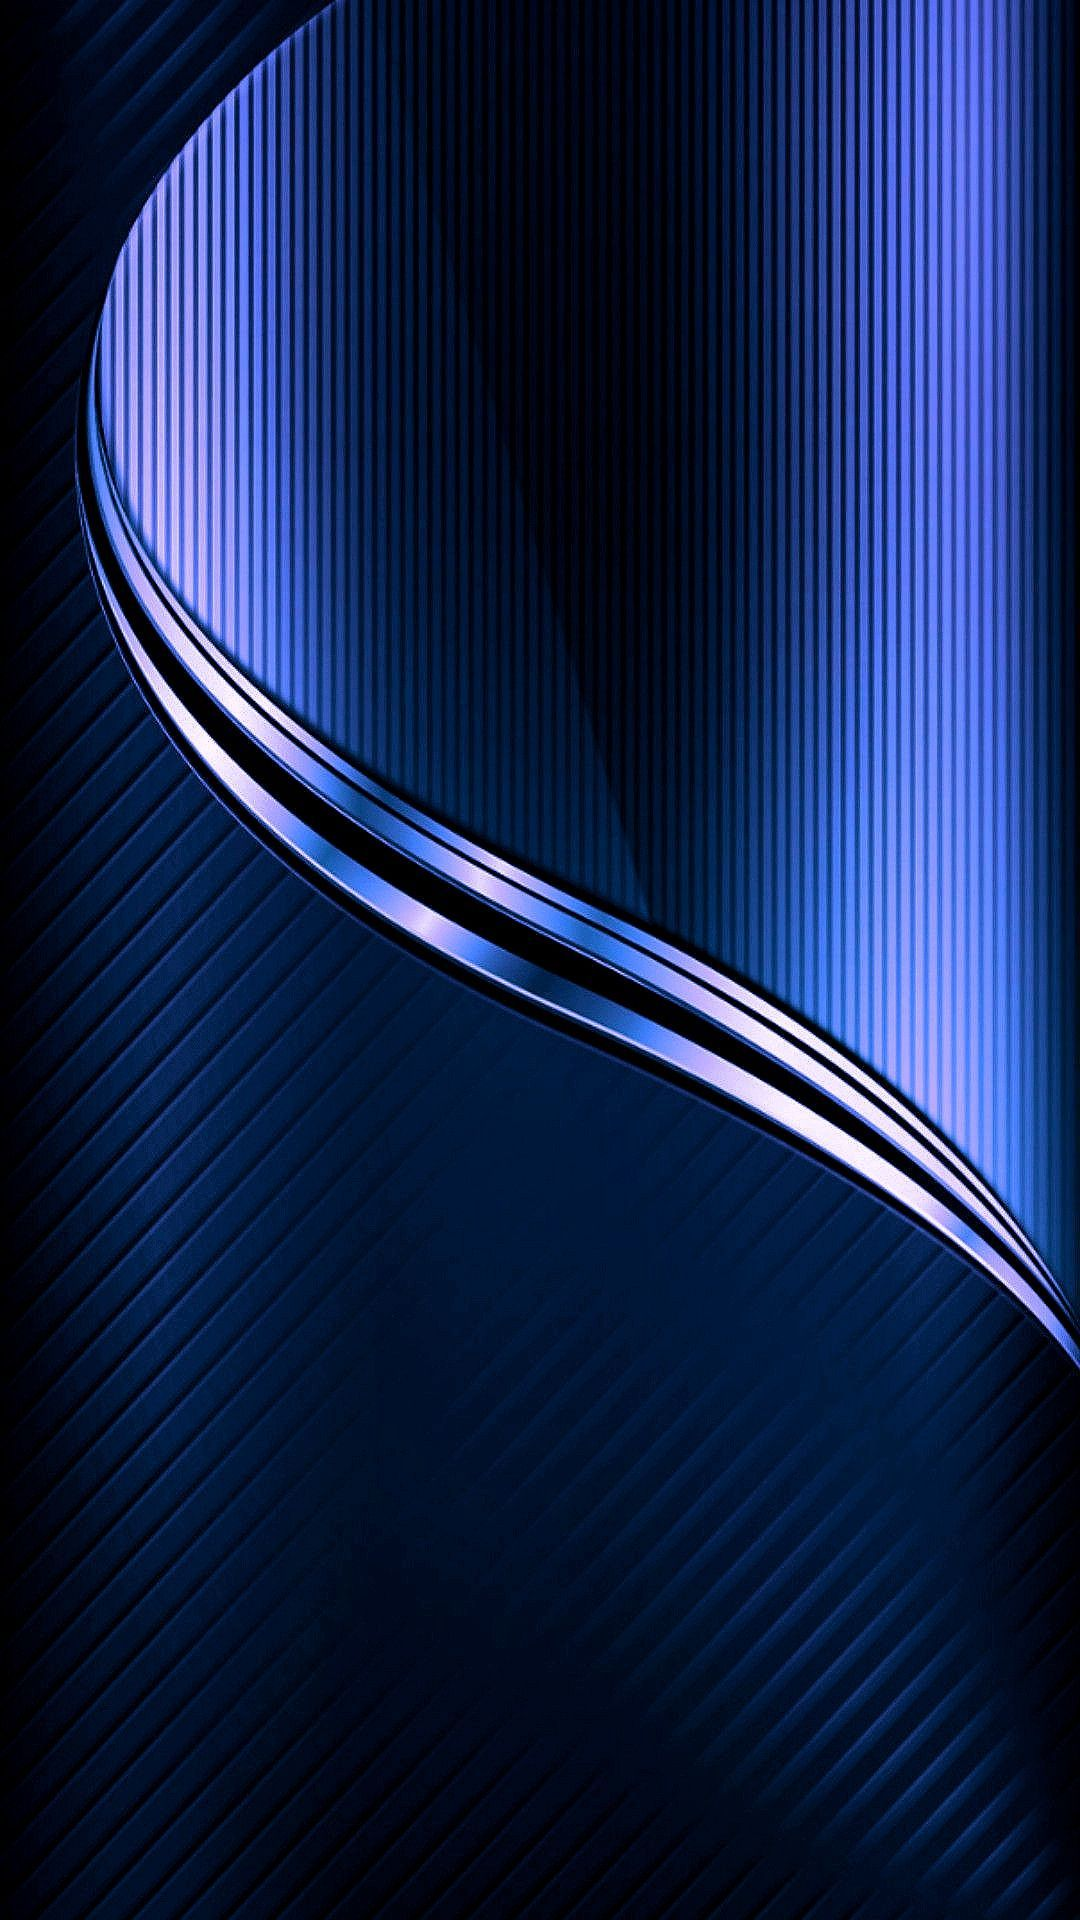 Blue Wallpapers Wallpaper Backgrounds Iphone Wallpaper Aq Abstraktnye Fony Oboi Abstraktnye Fotografii